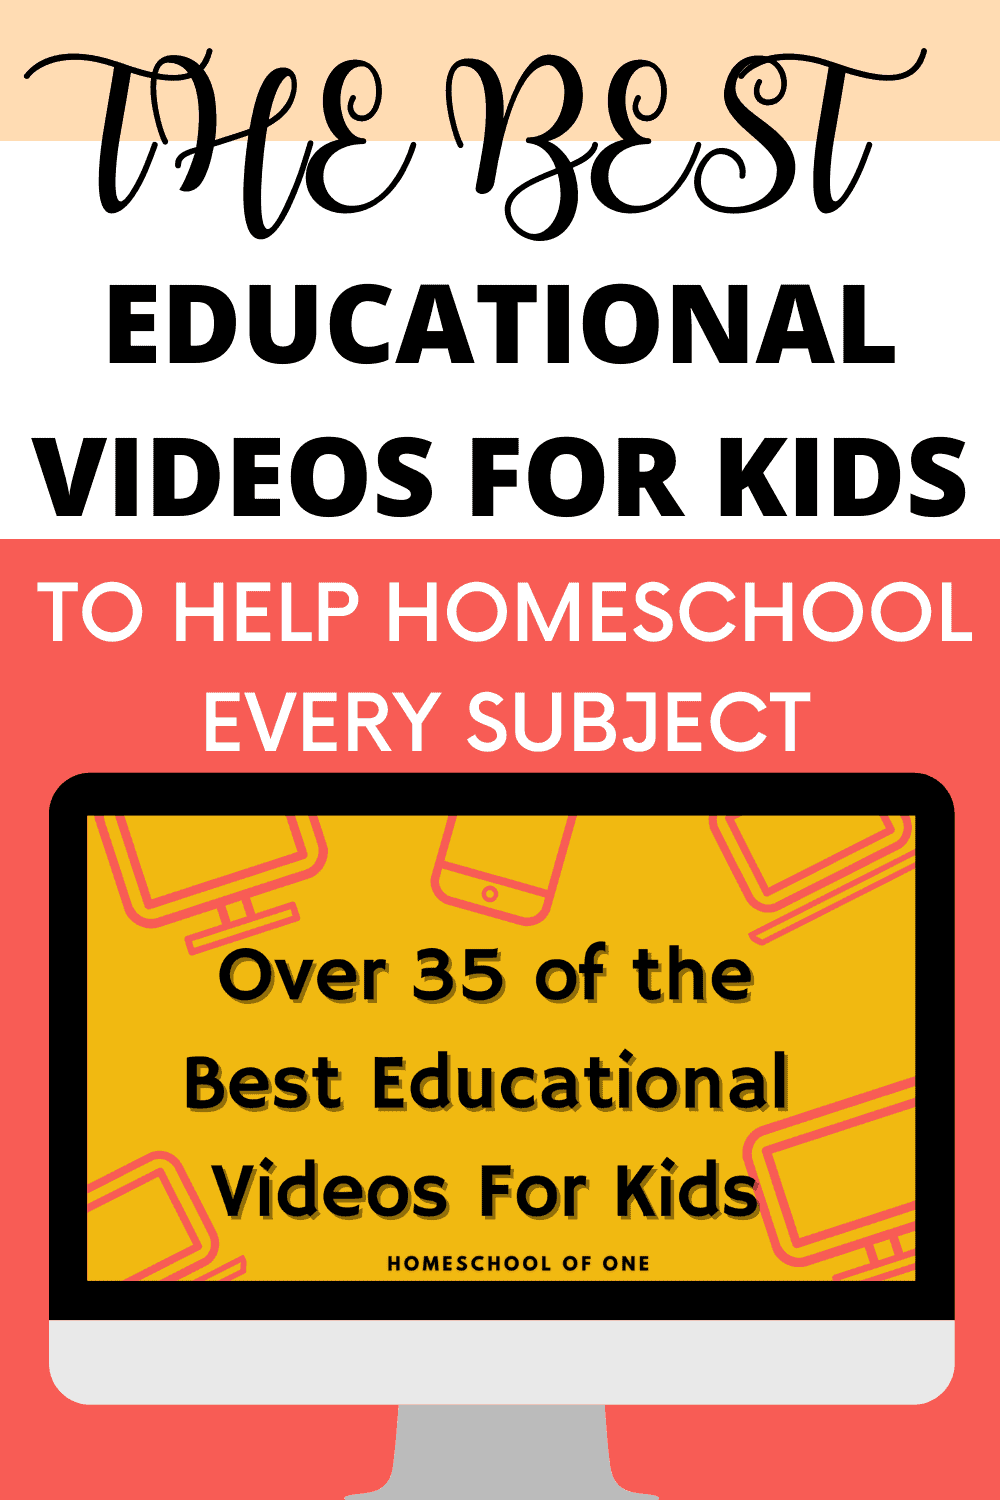 Over 35 of the best educational videos for kids to help with every subject in homeschool